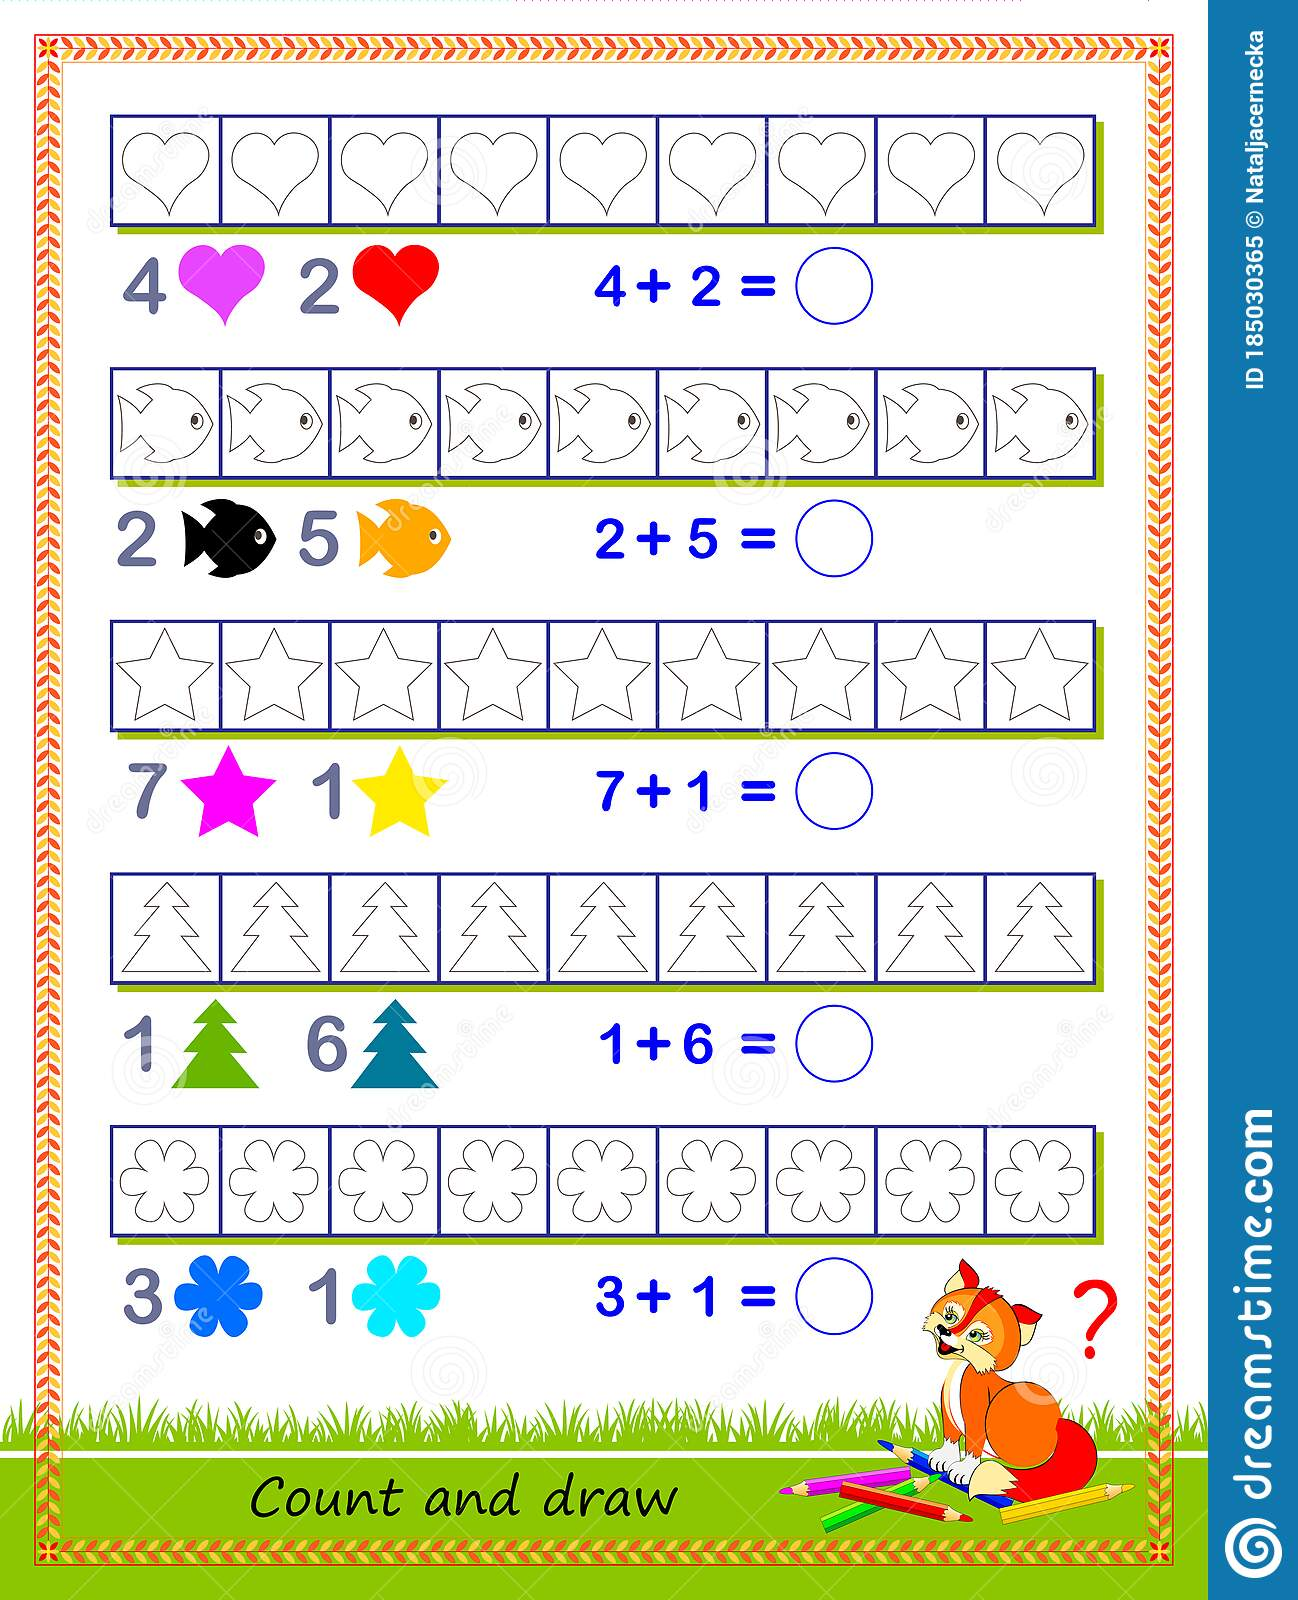 Math Education For Children Solve Examples And Paint The